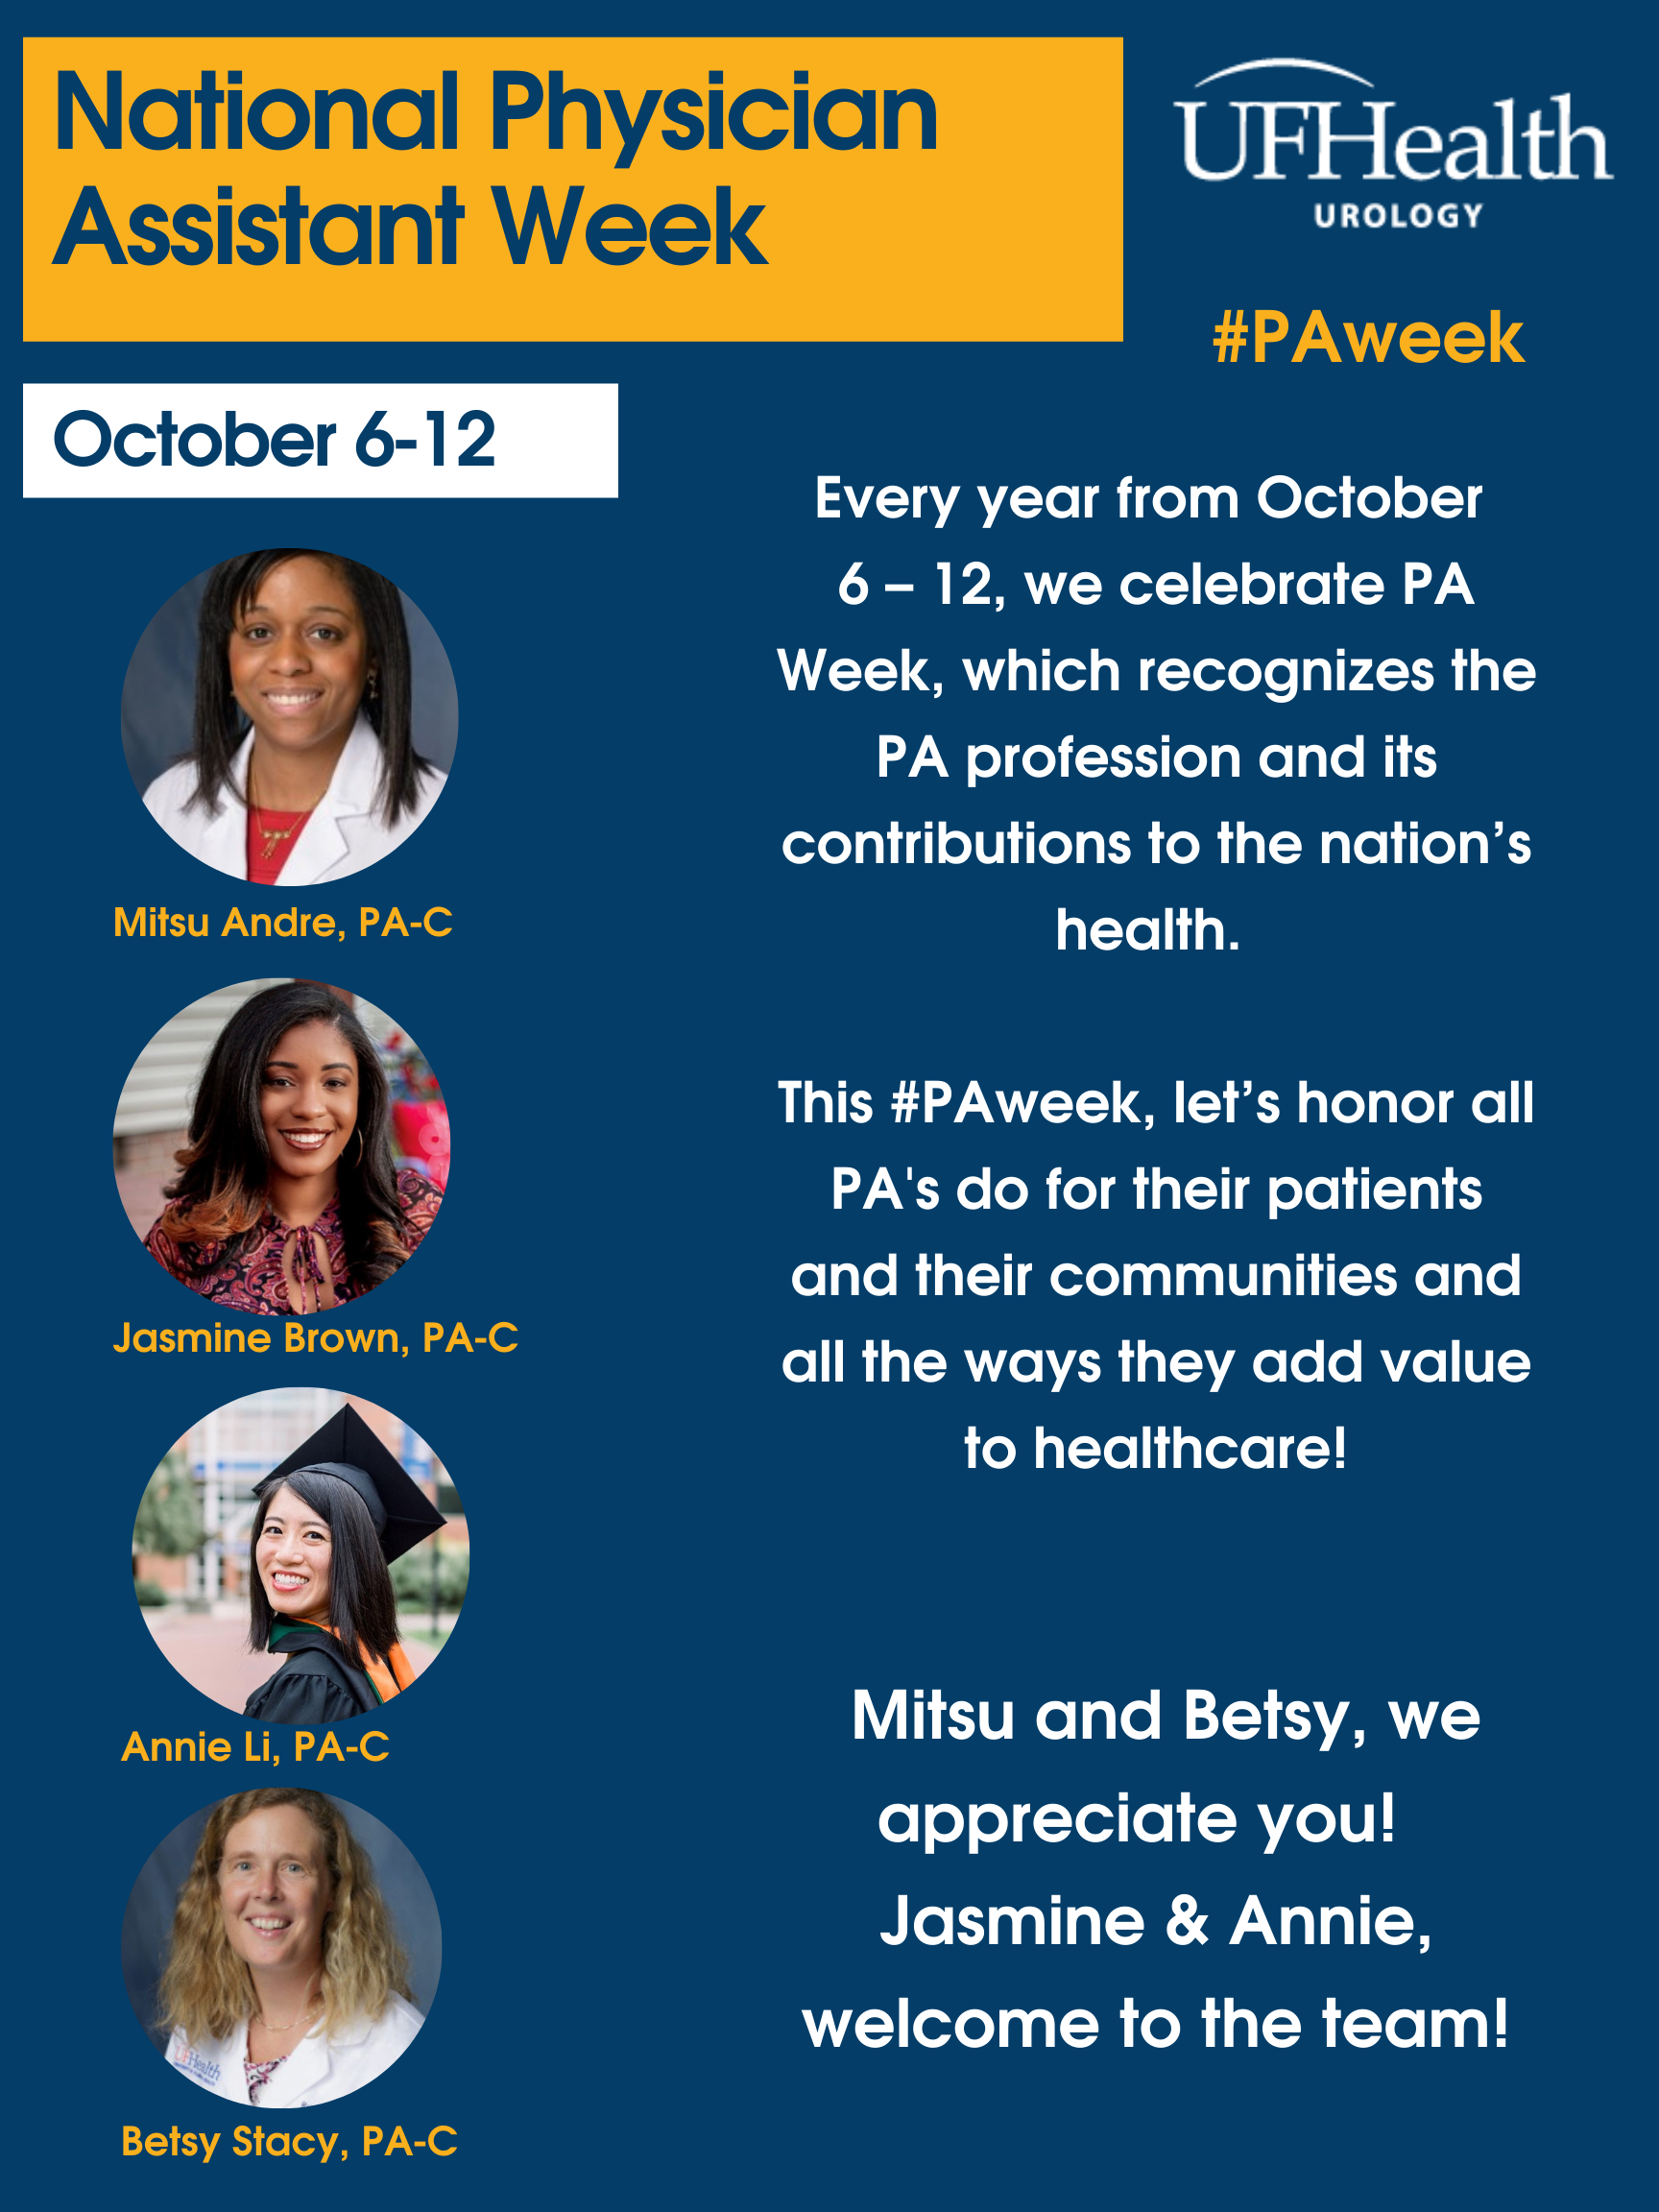 a blue card celebrating National Physician Assistant Week with pictures of our 4 pa's.  very year from October  6 – 12, we celebrate PA Week, which recognizes the PA profession and its contributions to the nation's health.   This #PAweek, let's honor all PA's do for their patients and their communities and all the ways they add value to healthcare!    Mitsu and Betsy, we appreciate you!  Jasmine & Annie, welcome to the team!